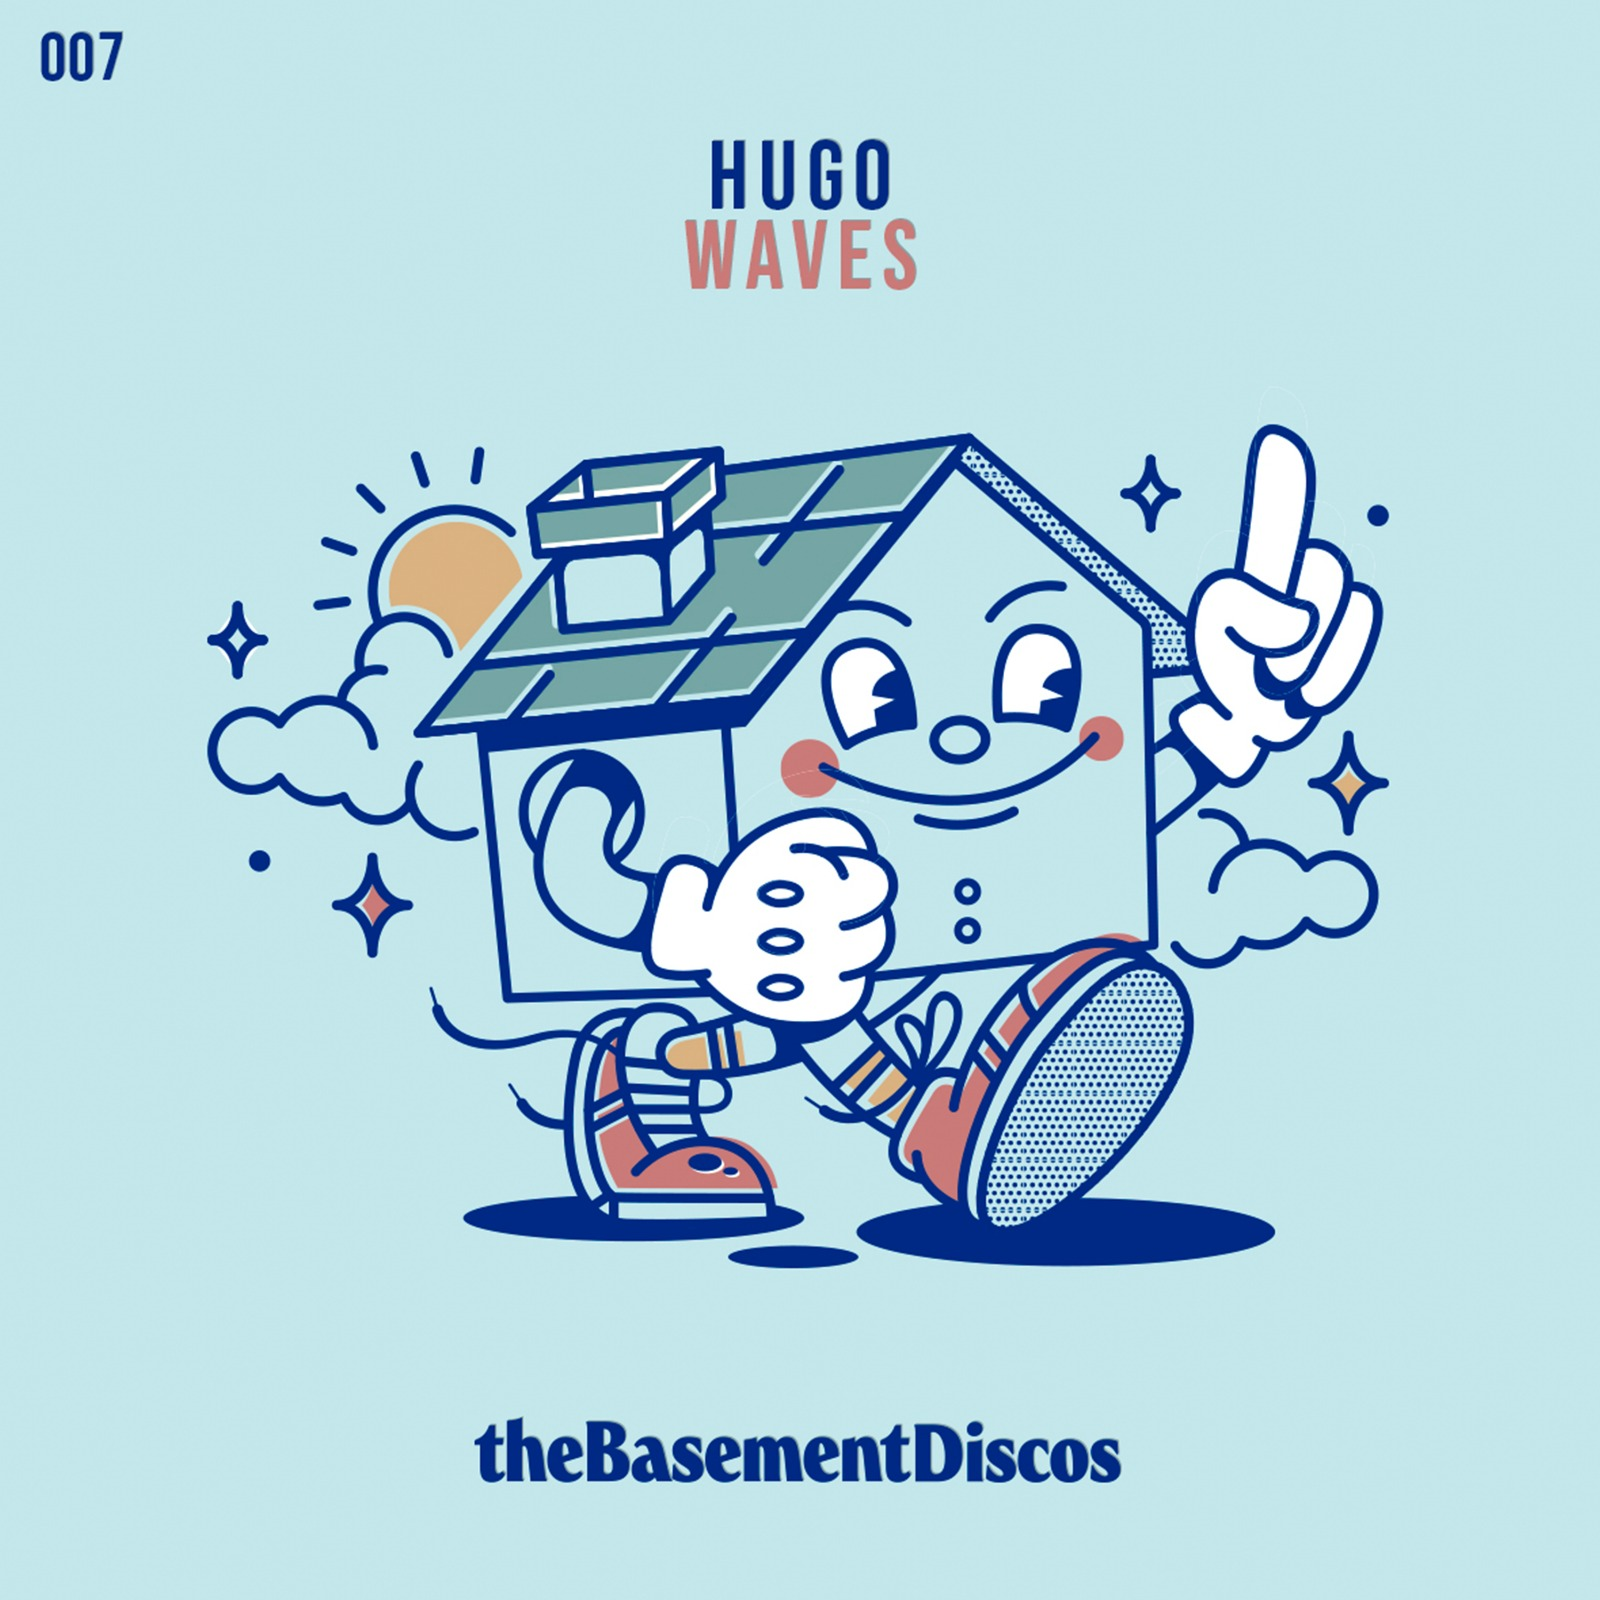 HUGO WAVES